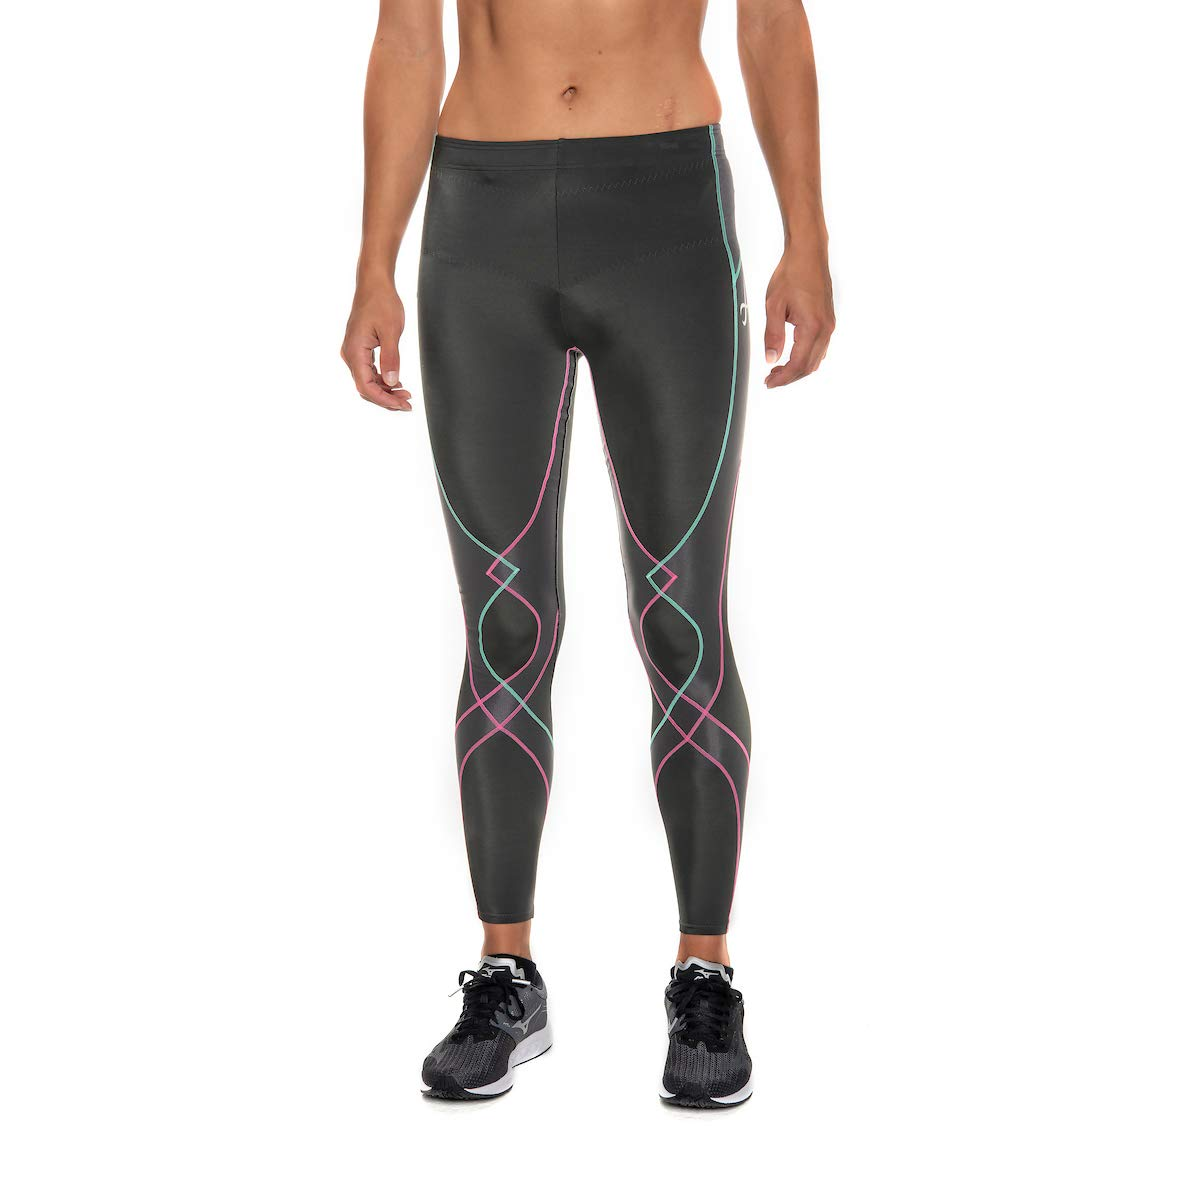 CW-X Women's Stabilyx Joint Support Compression Tight, Grey/Pink/Turquoise, Small